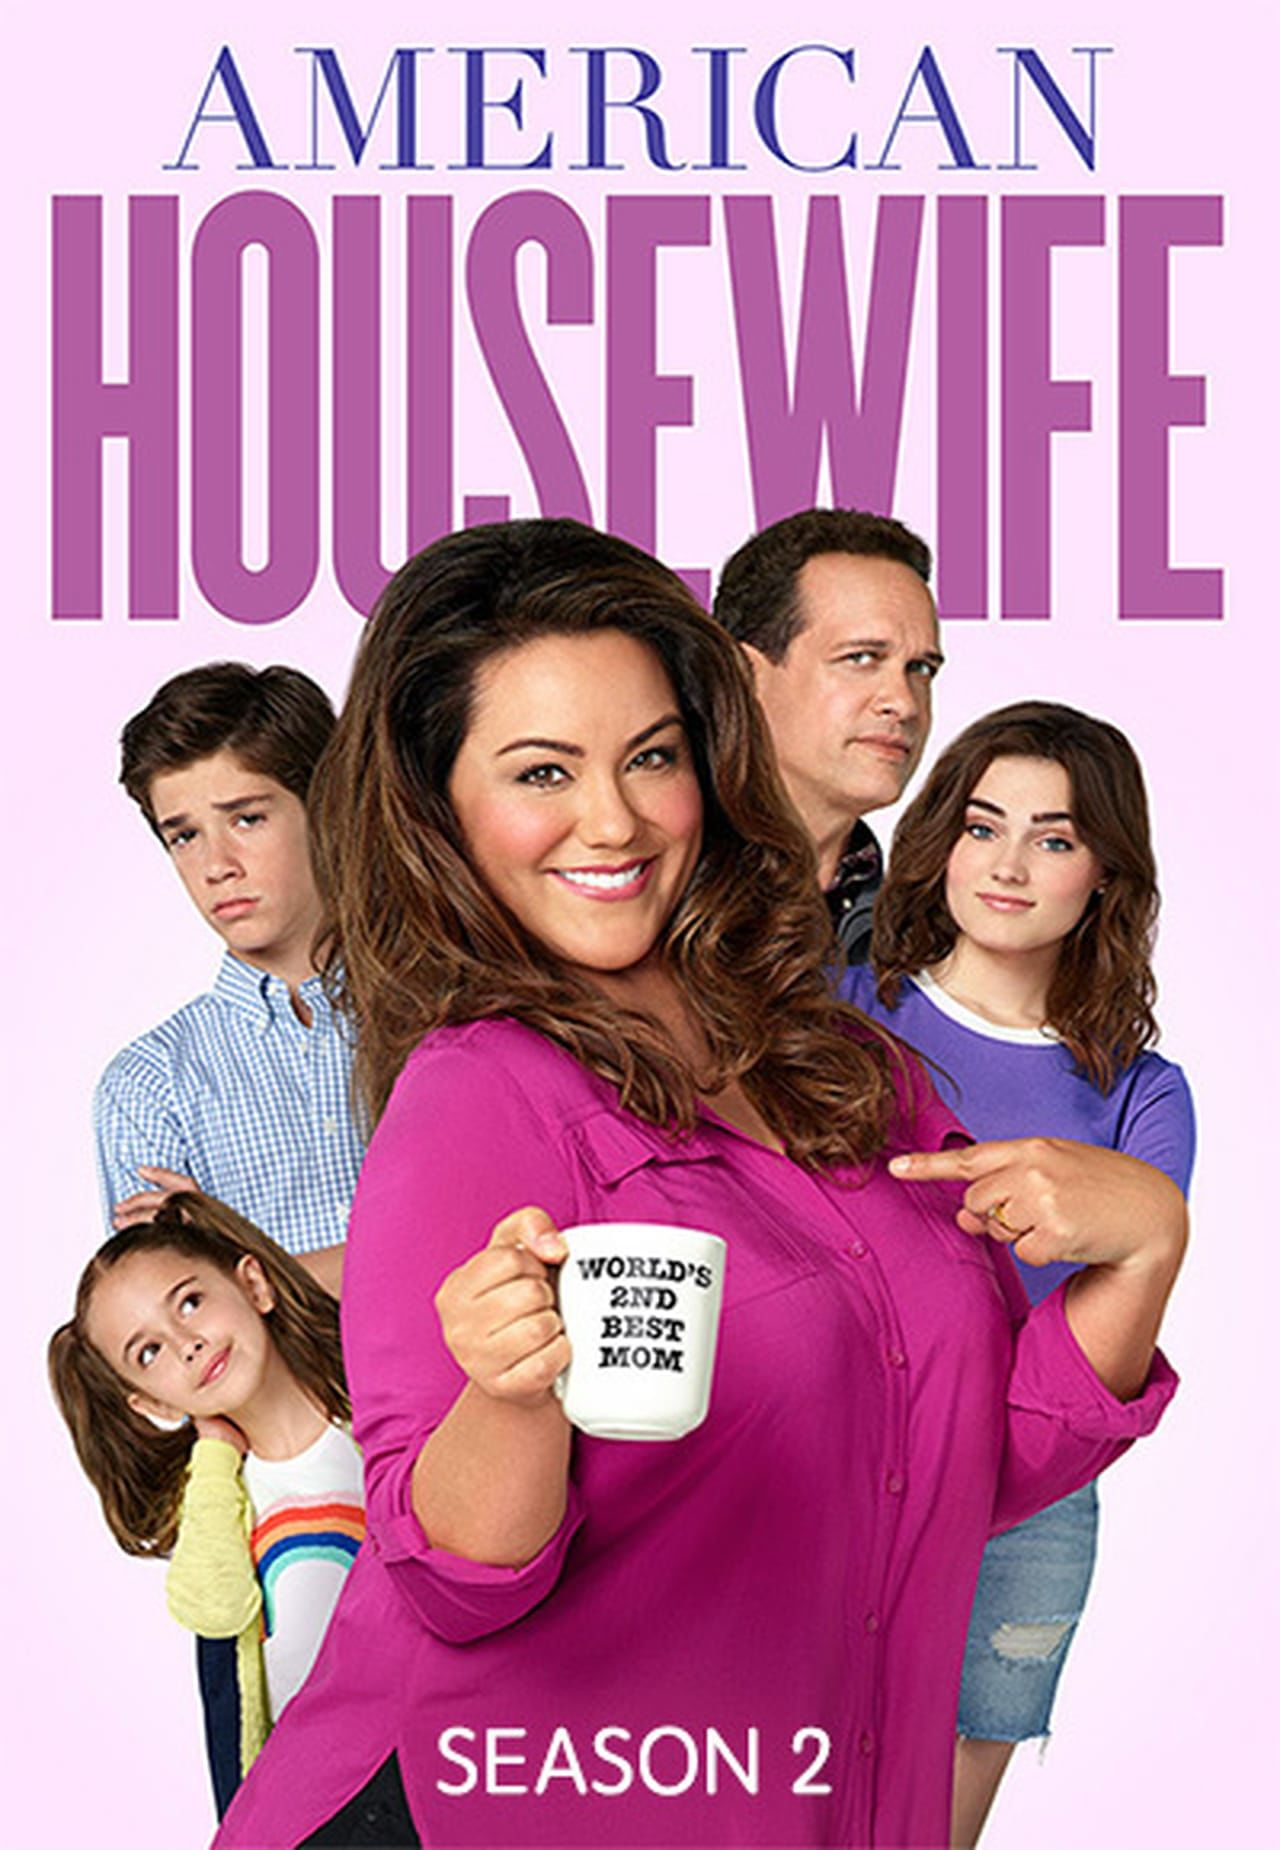 American Housewife cover